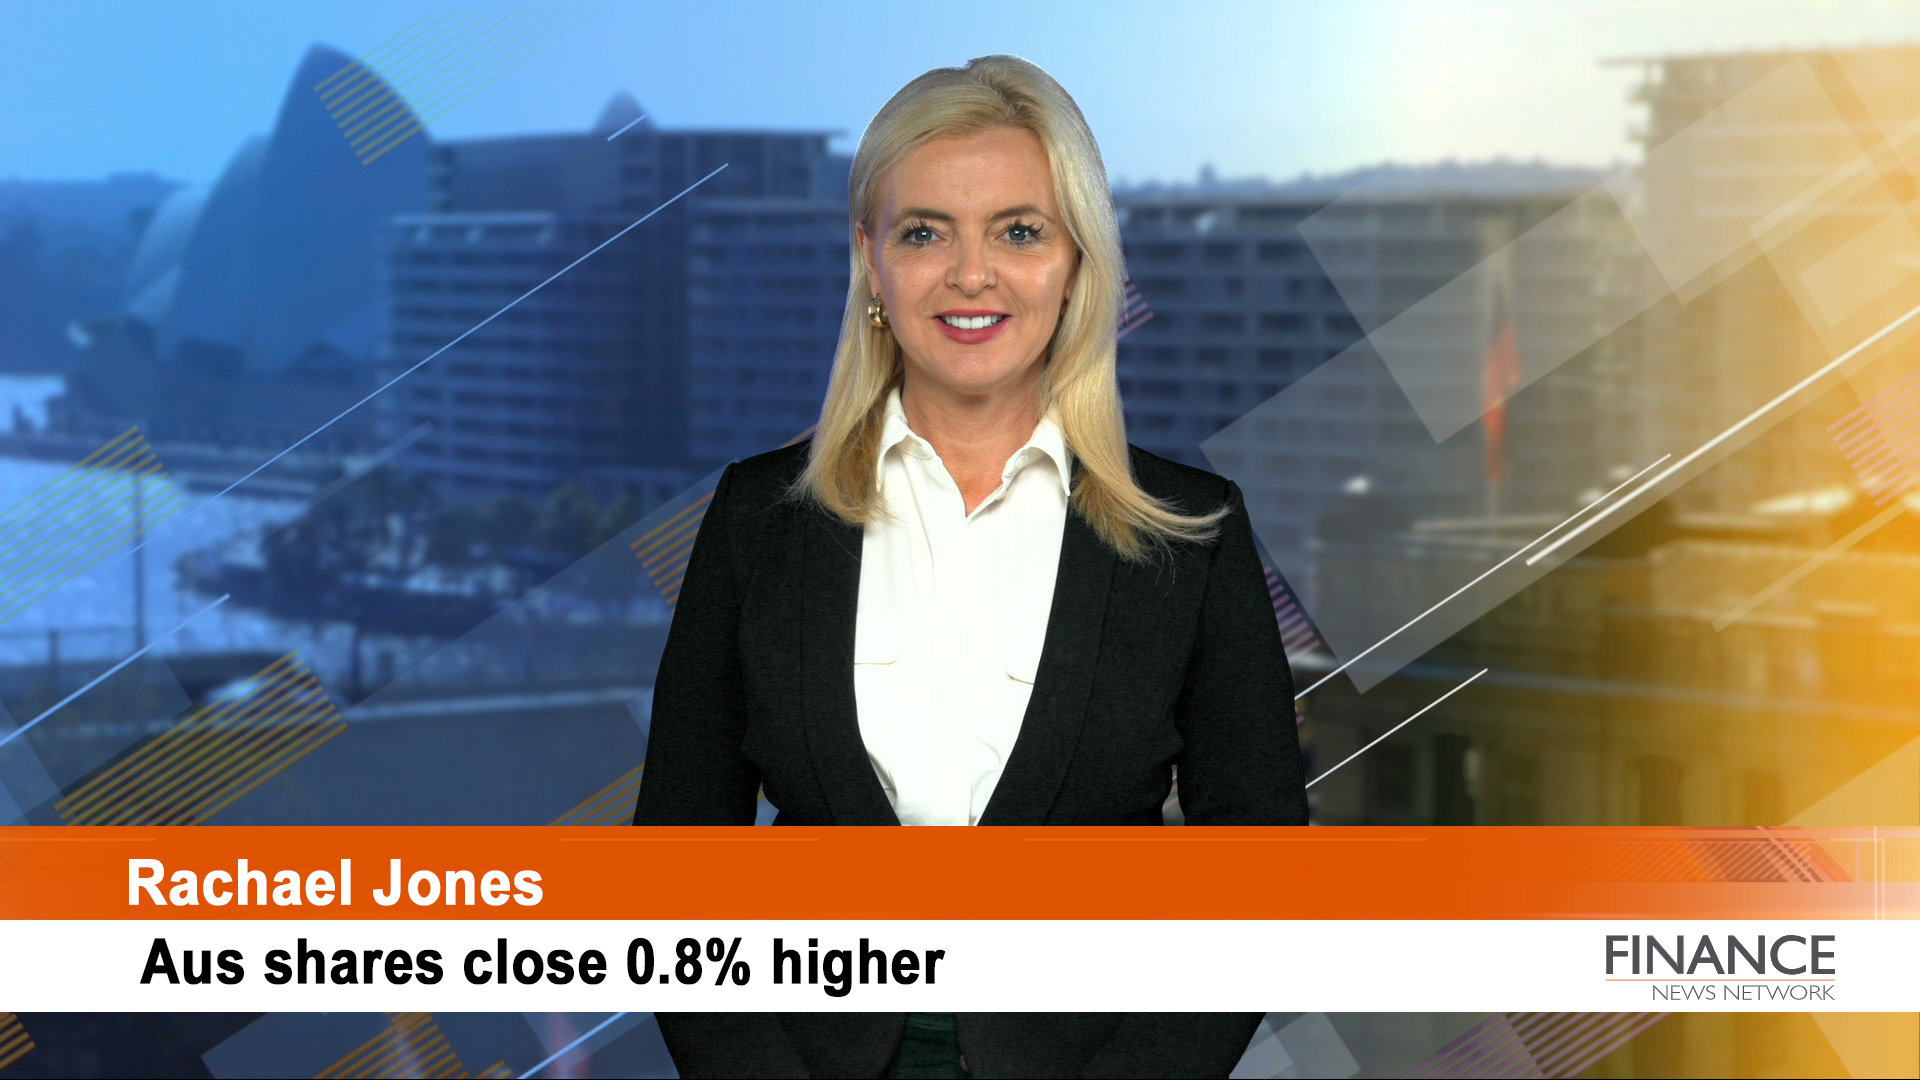 Miners took a hit today with BHP (ASX:BHP) weighing on the market: ASX closed 0.8% higher